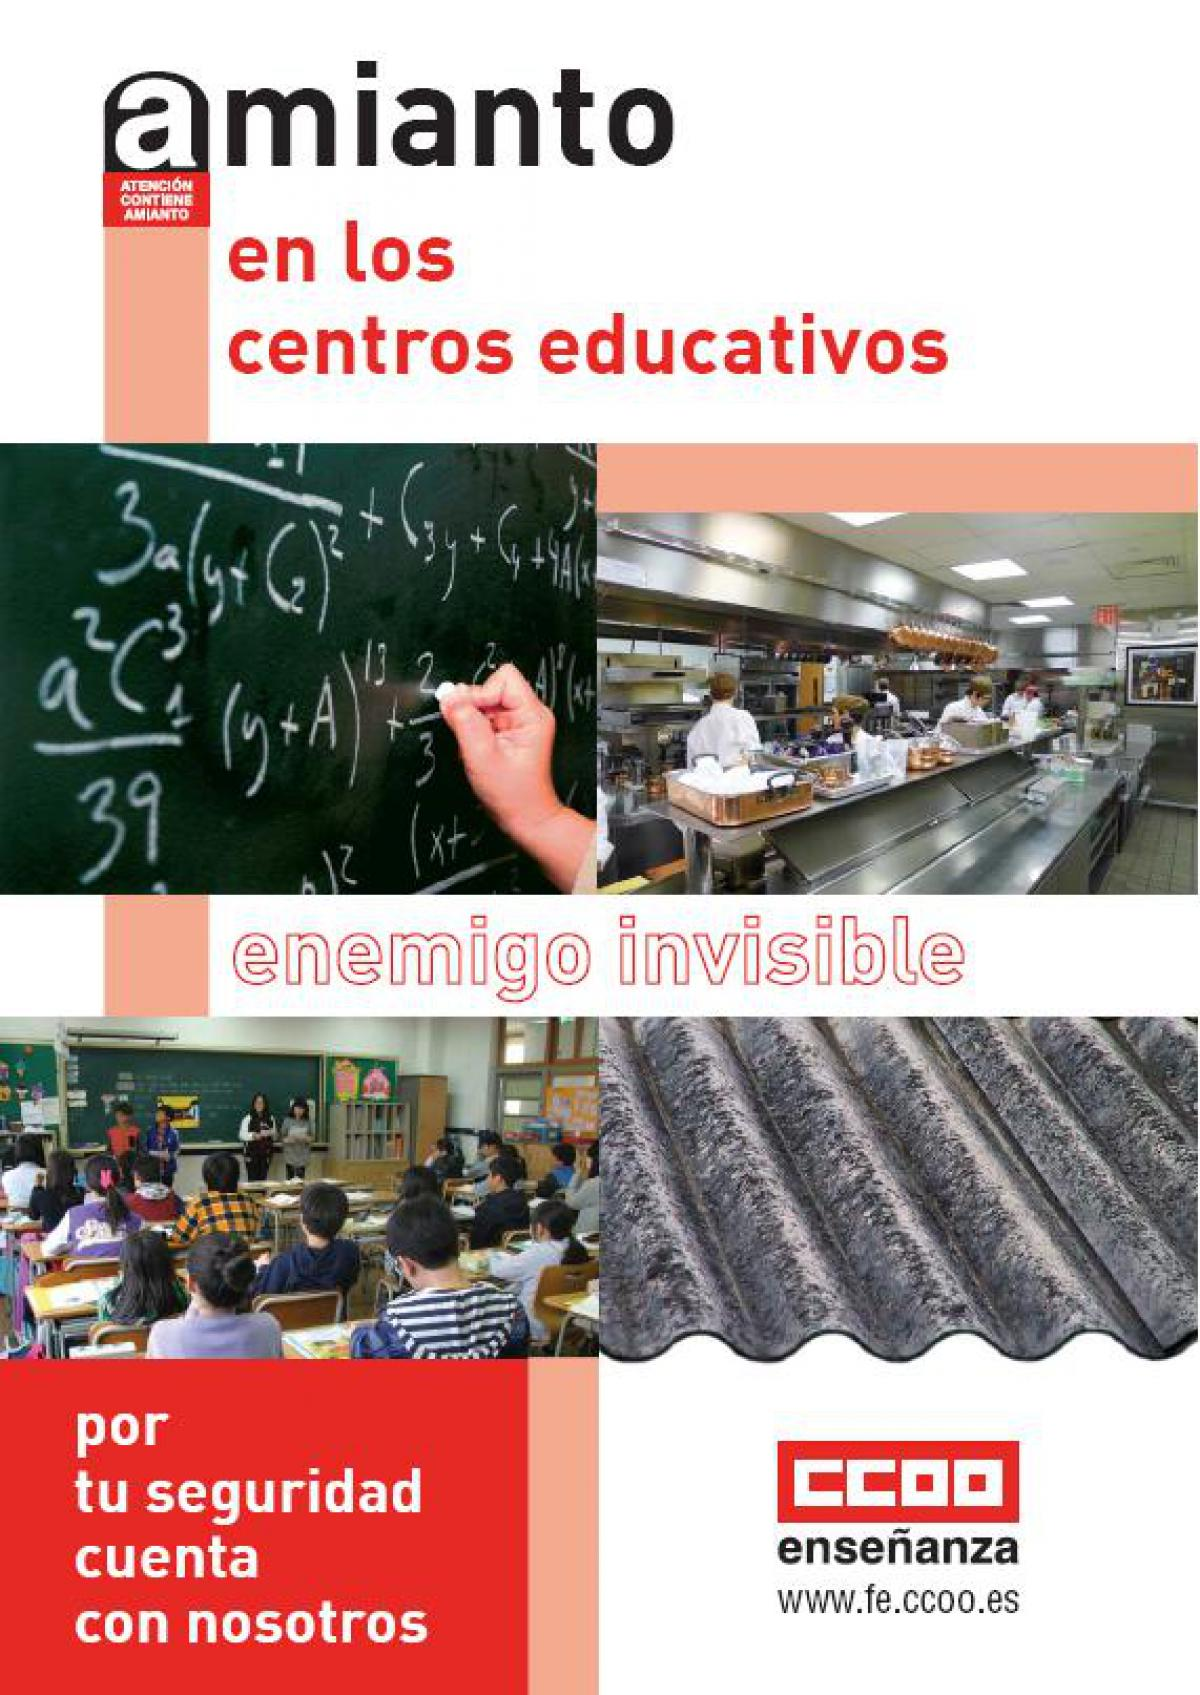 Amianto en los centros educativos: Enemigo invisible